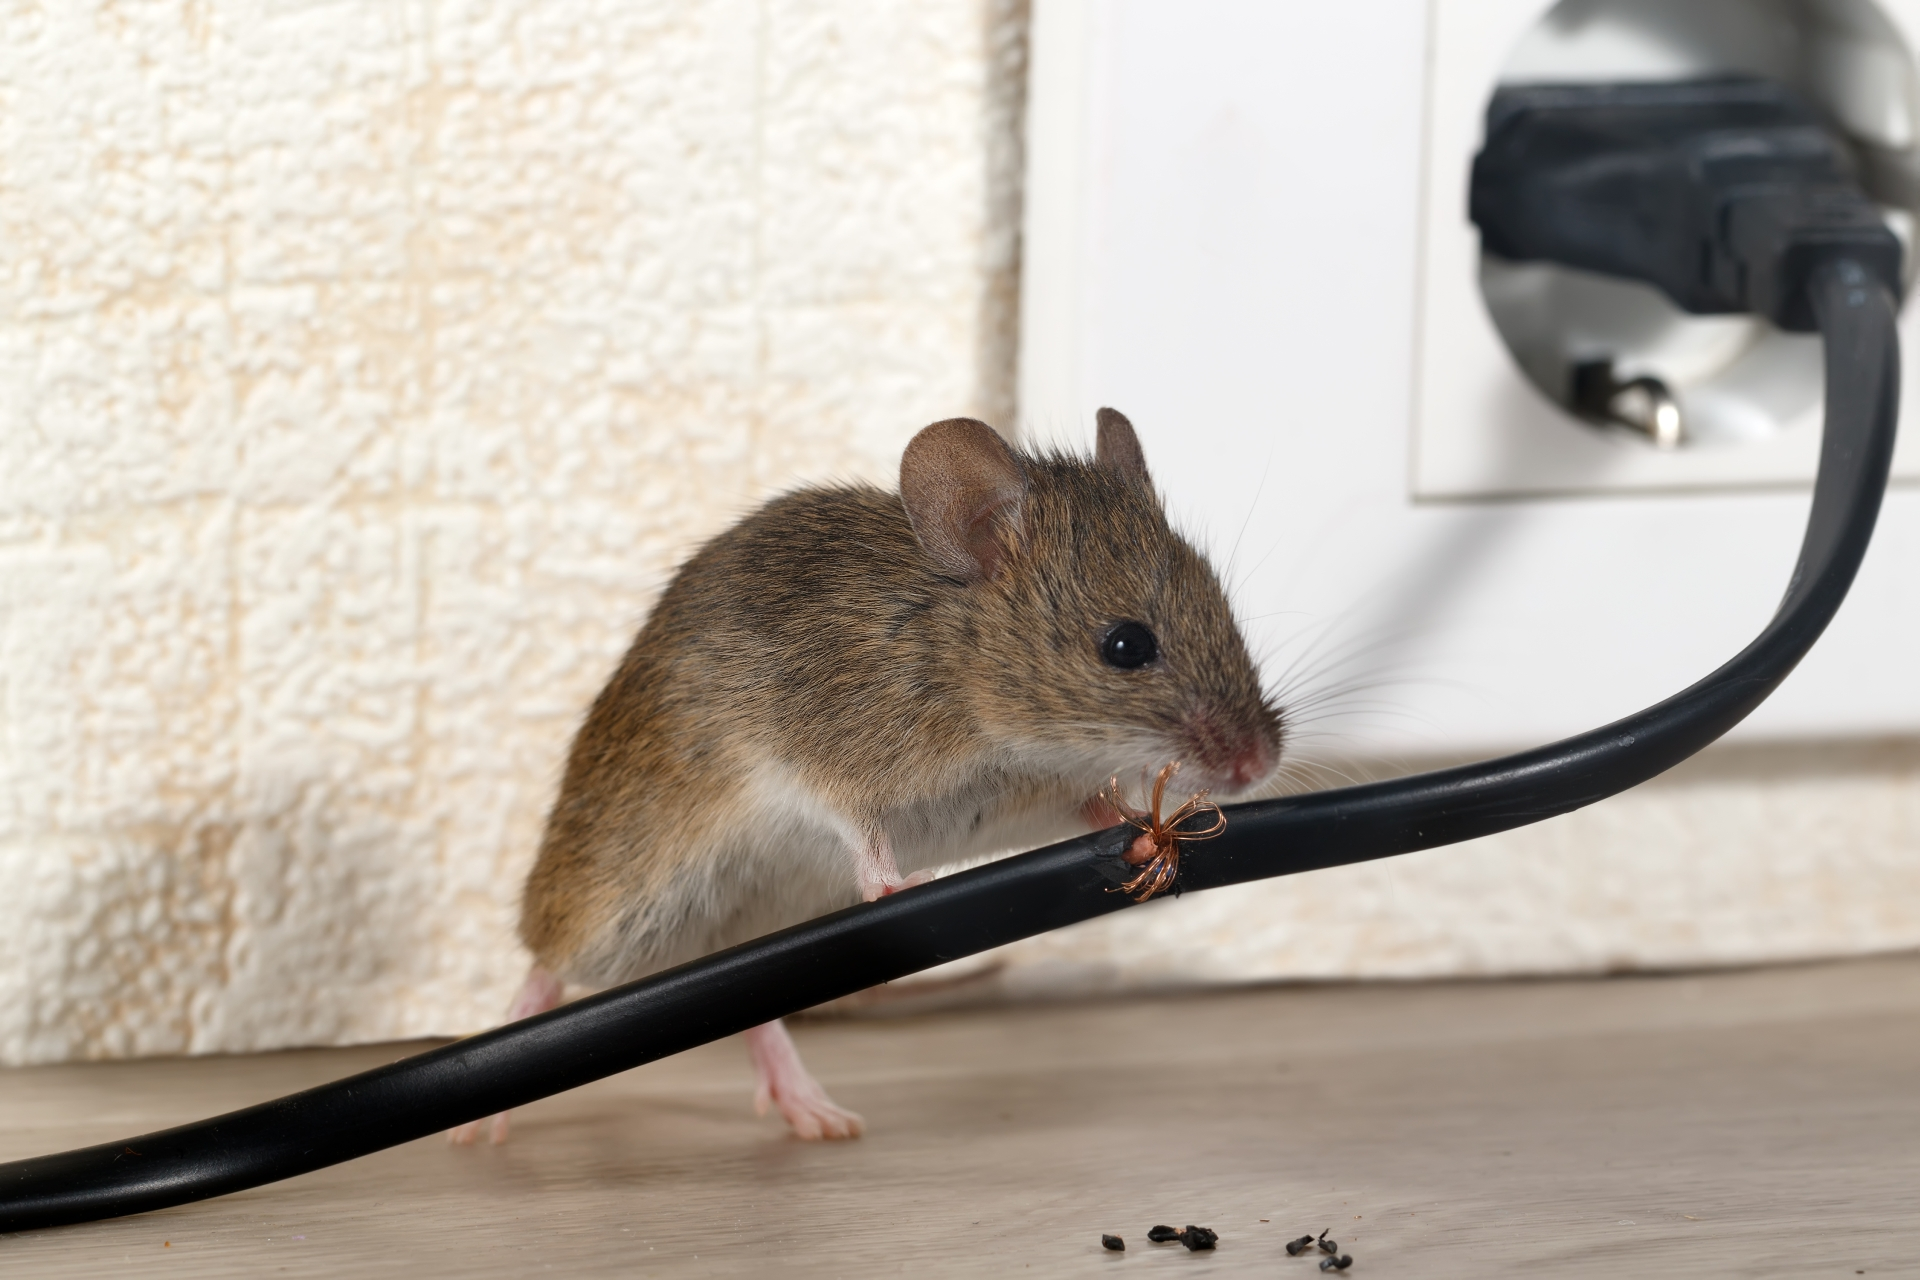 Mice Infestation, Pest Control in Chiswick, W4. Call Now 020 8166 9746